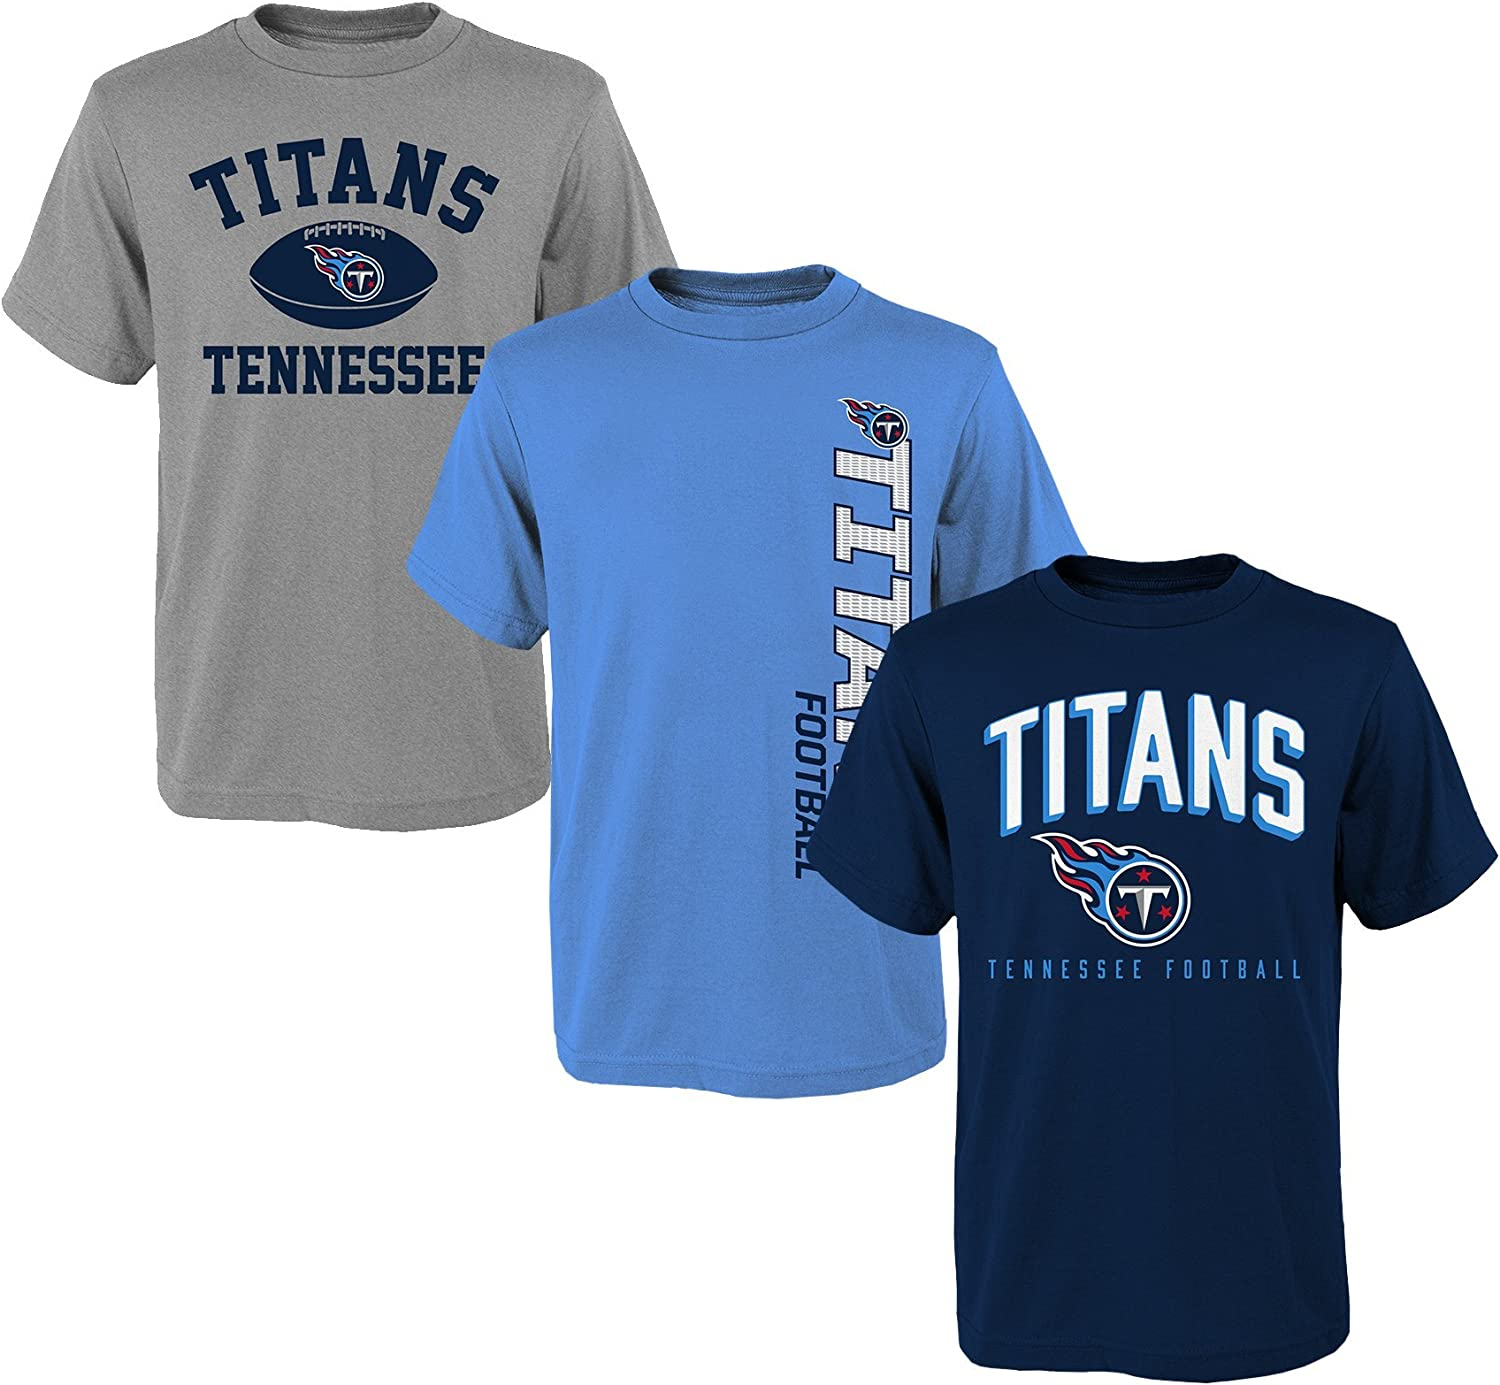 3piece Outerstuff NFL Boys 3-Piece Tee Set